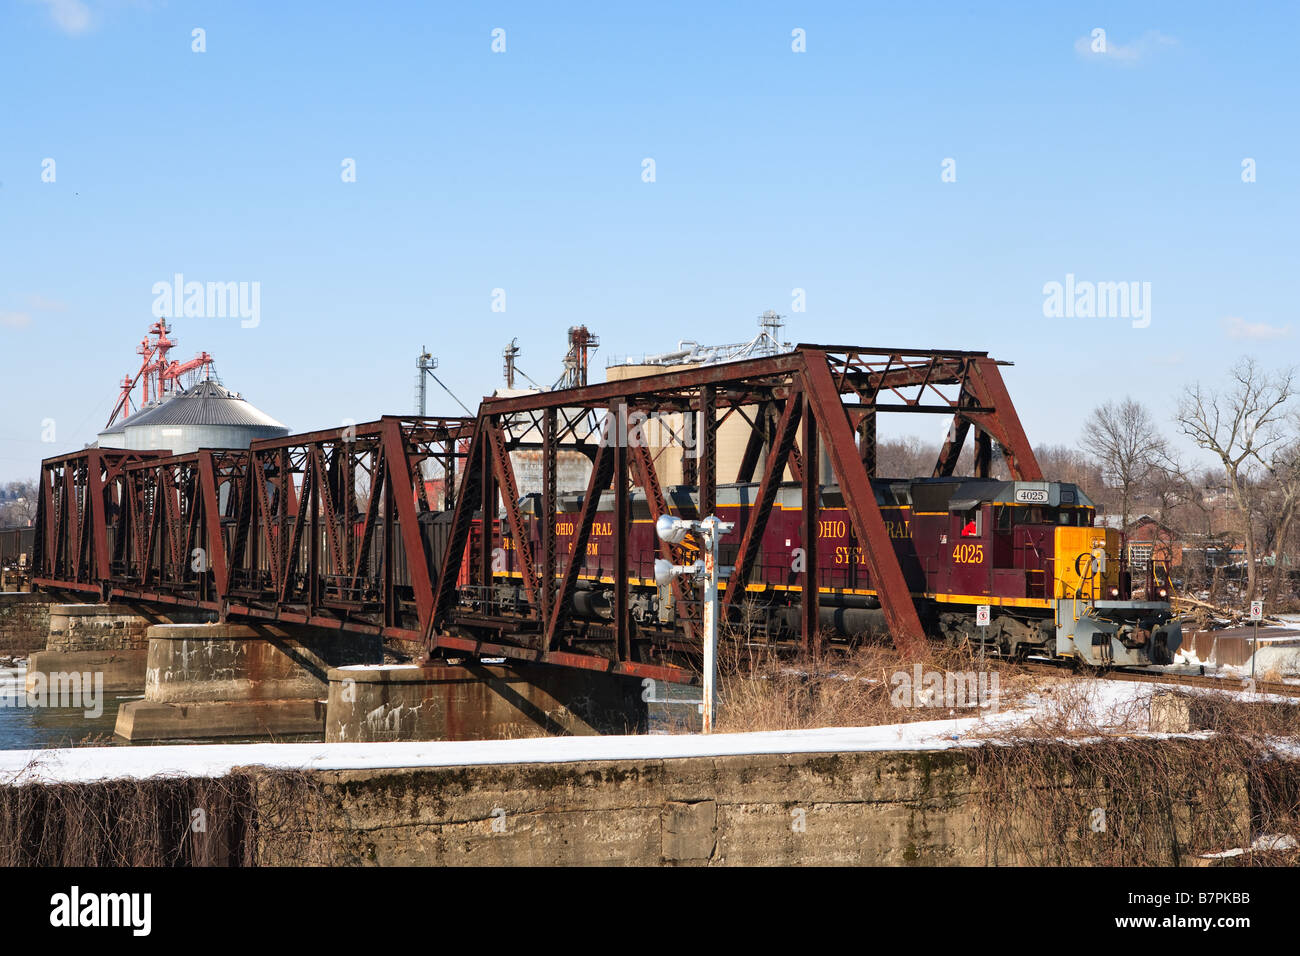 A freight train carrying coal is coming accross a railroad bridge - Stock Image